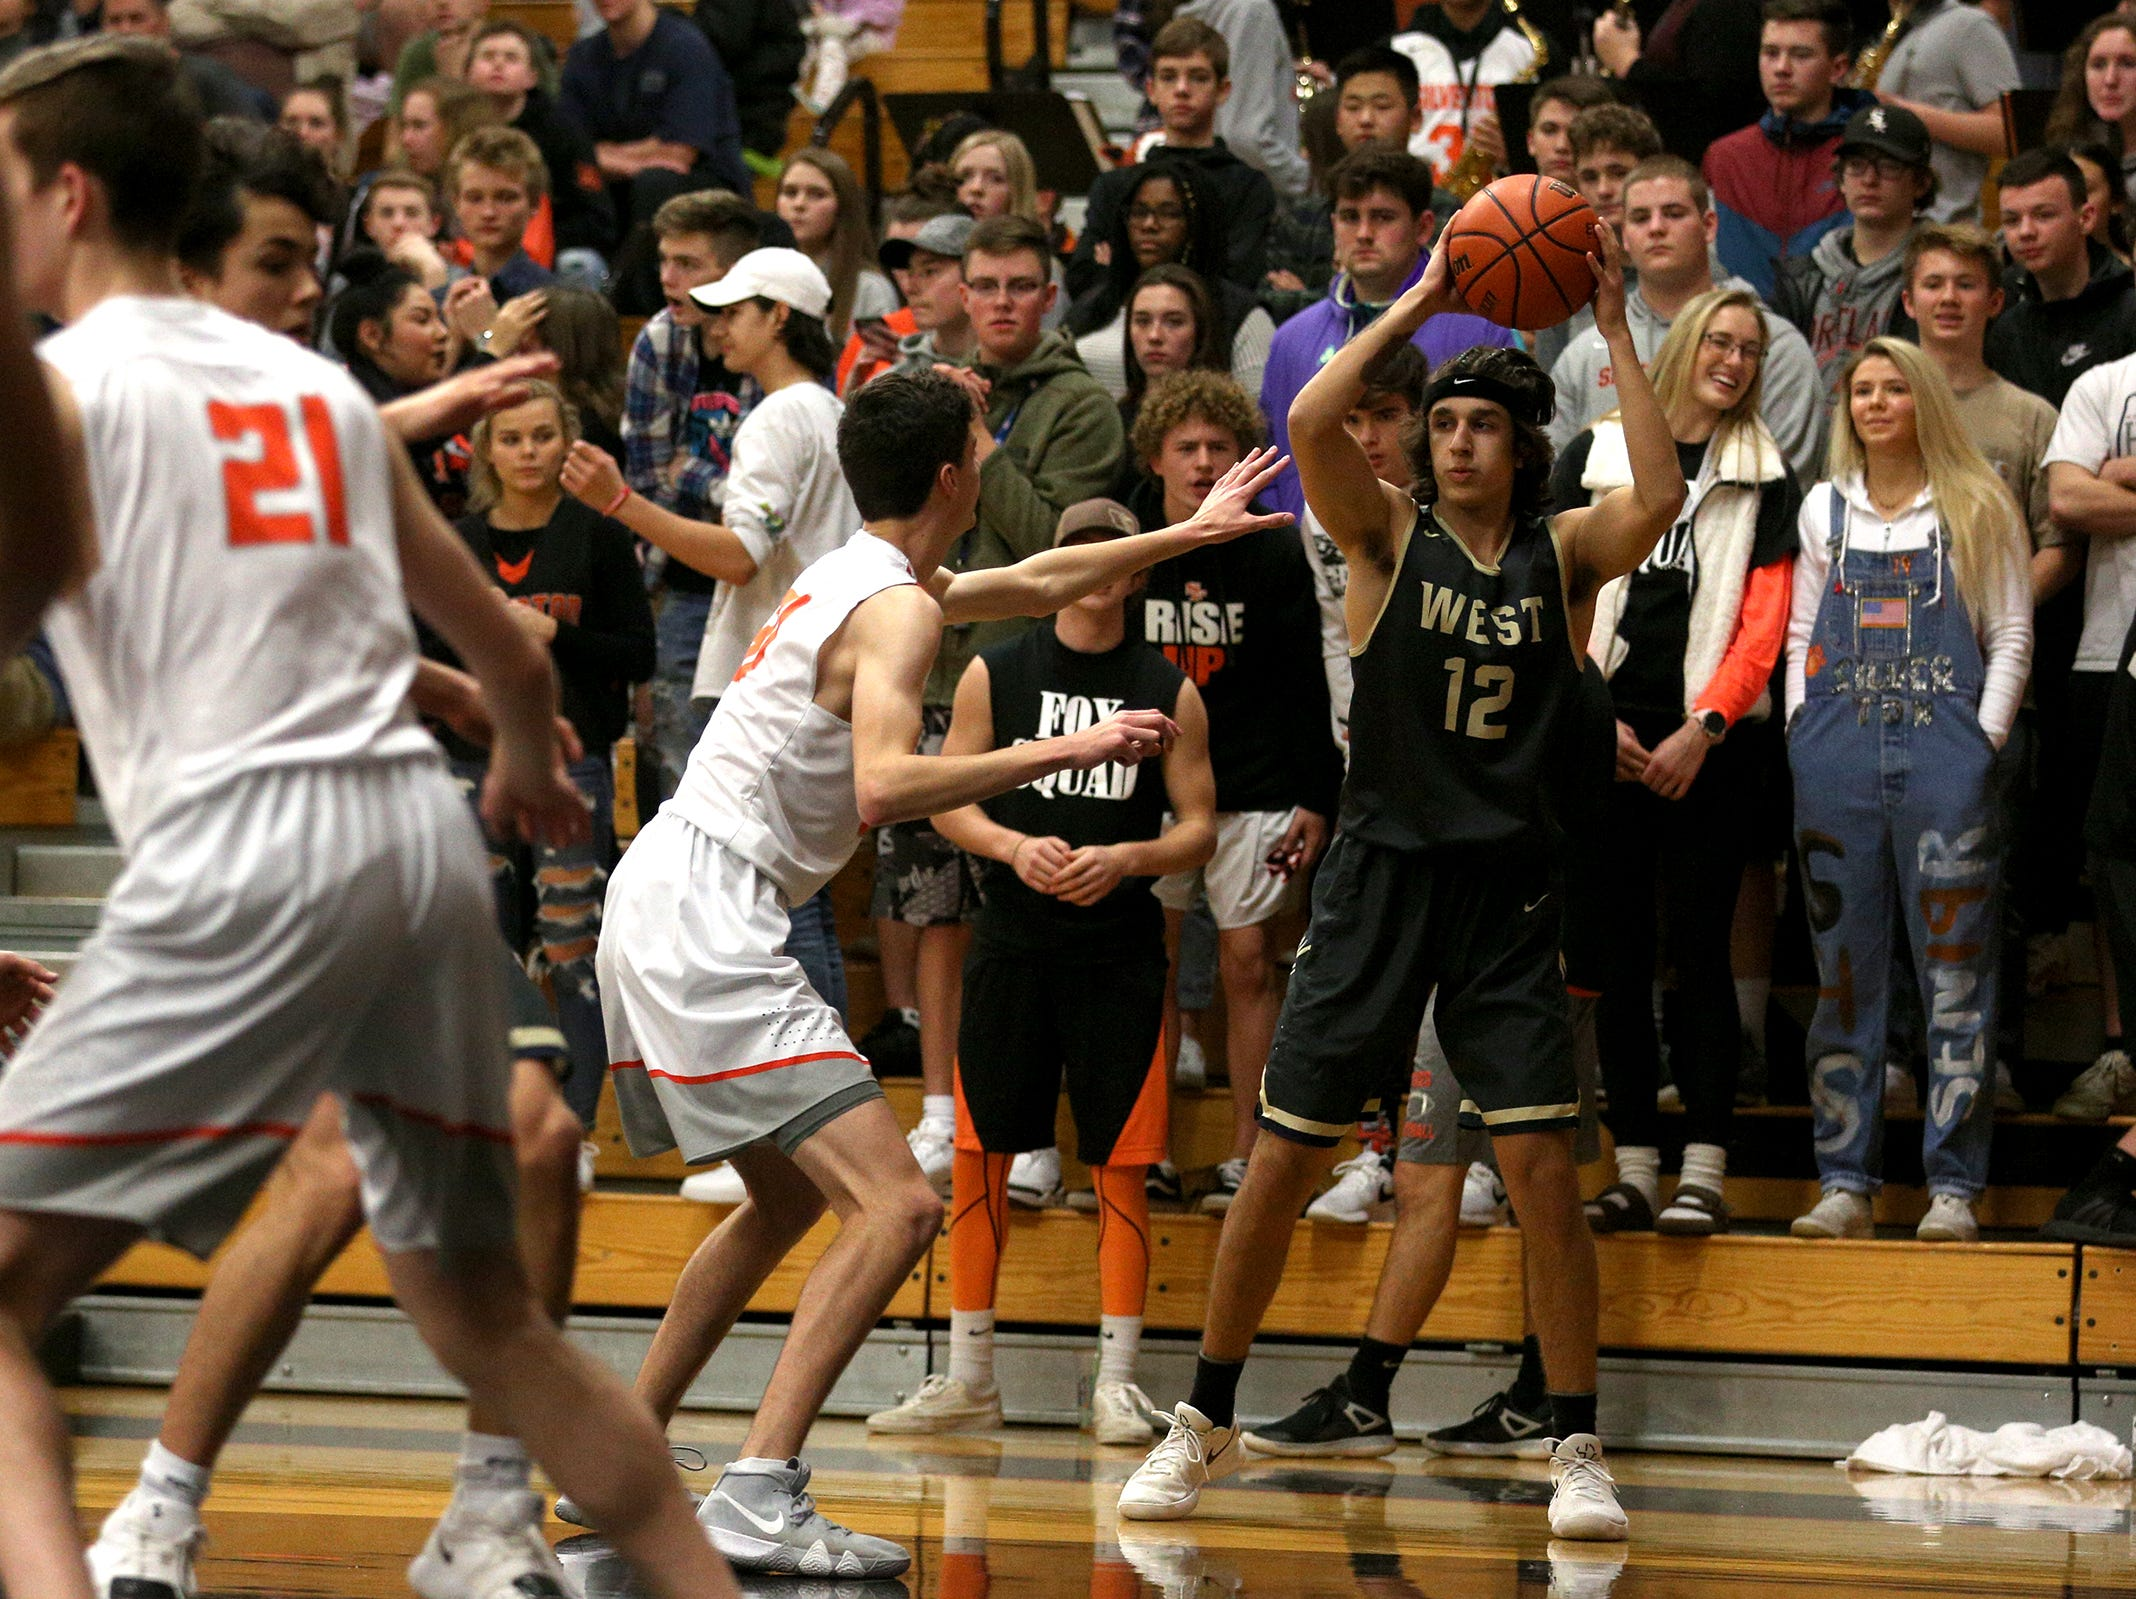 West Albany's Channon Schuerger (12) looks to make a pass during the West Albany vs. Silverton High School boys basketball game in Silverton on Friday, Jan. 25, 2019.